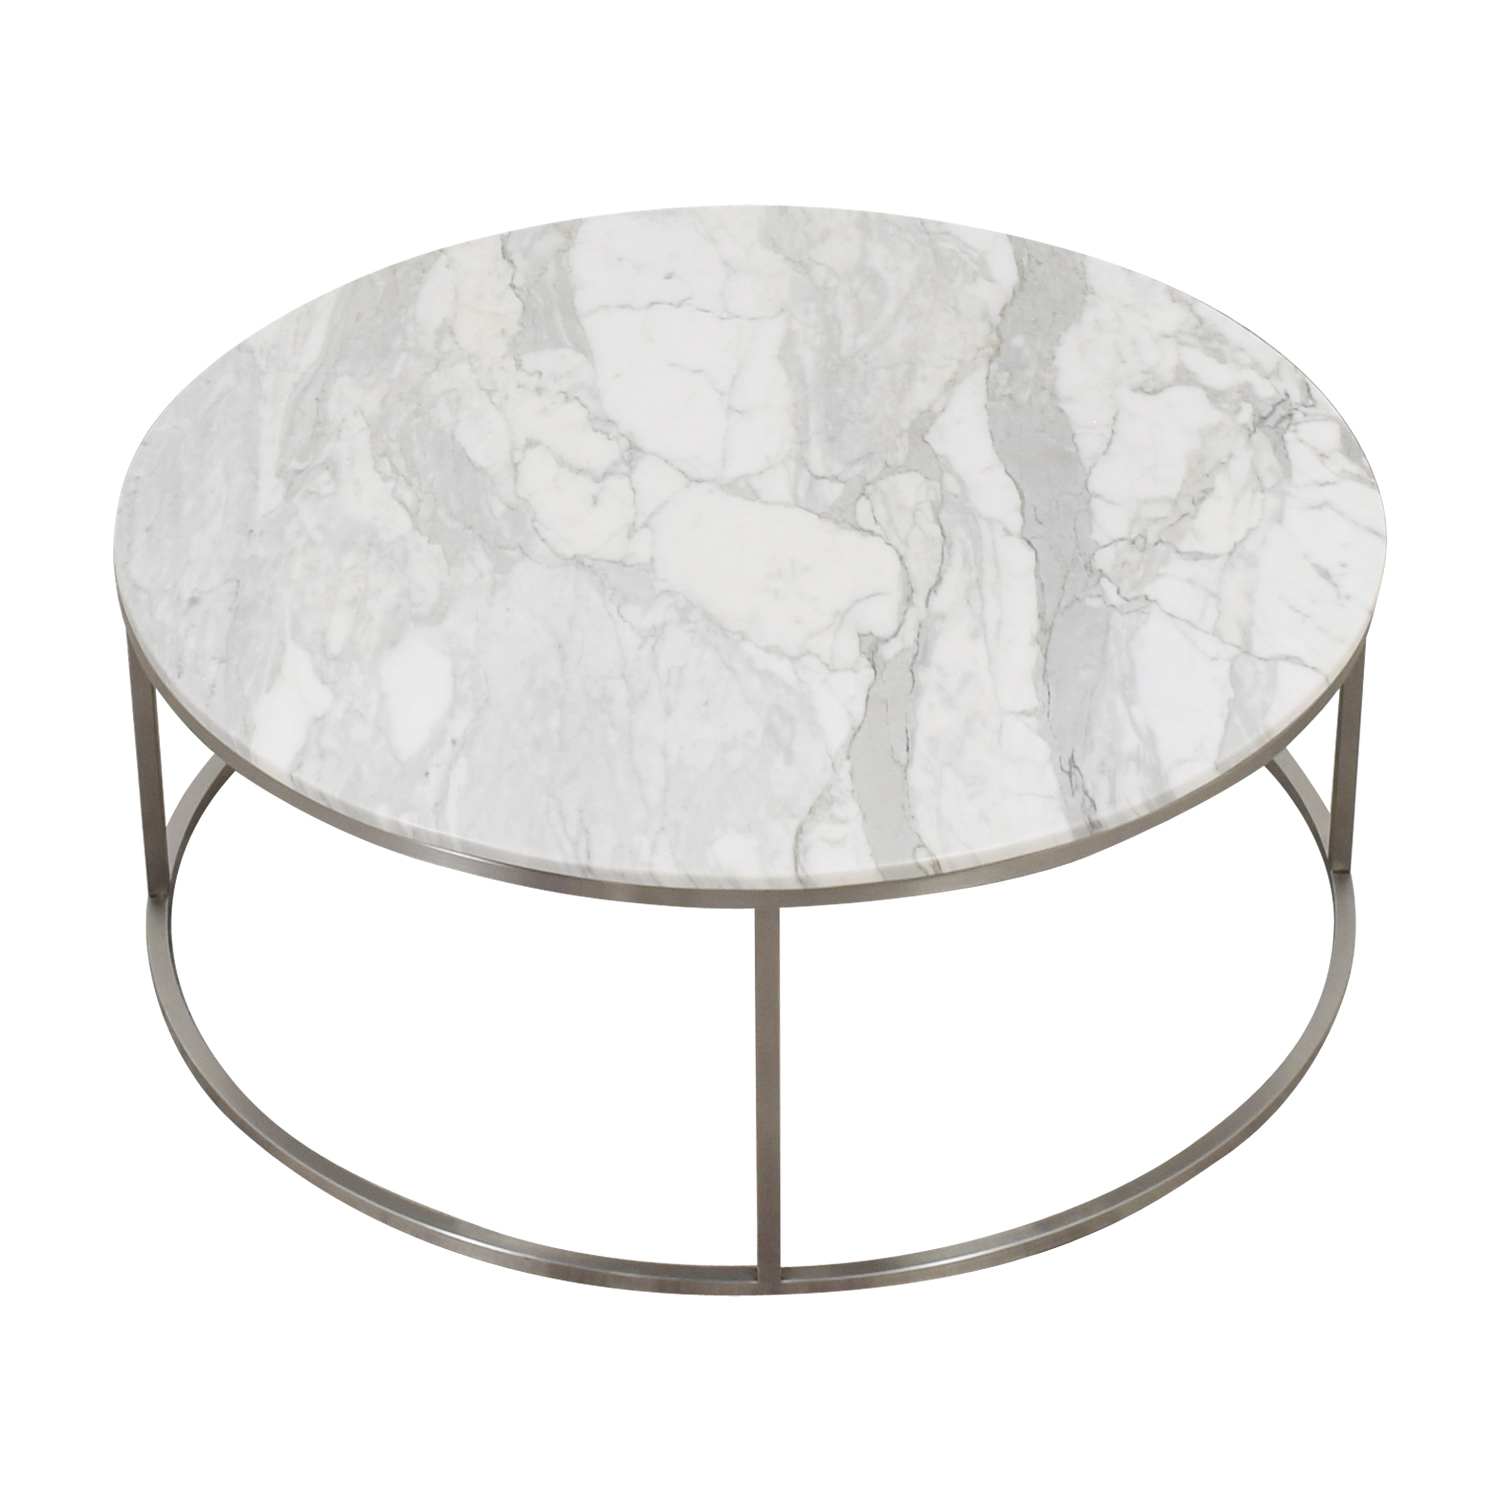 buy Design Within Reach Marble Round Coffee Table Design Within Reach Coffee Tables